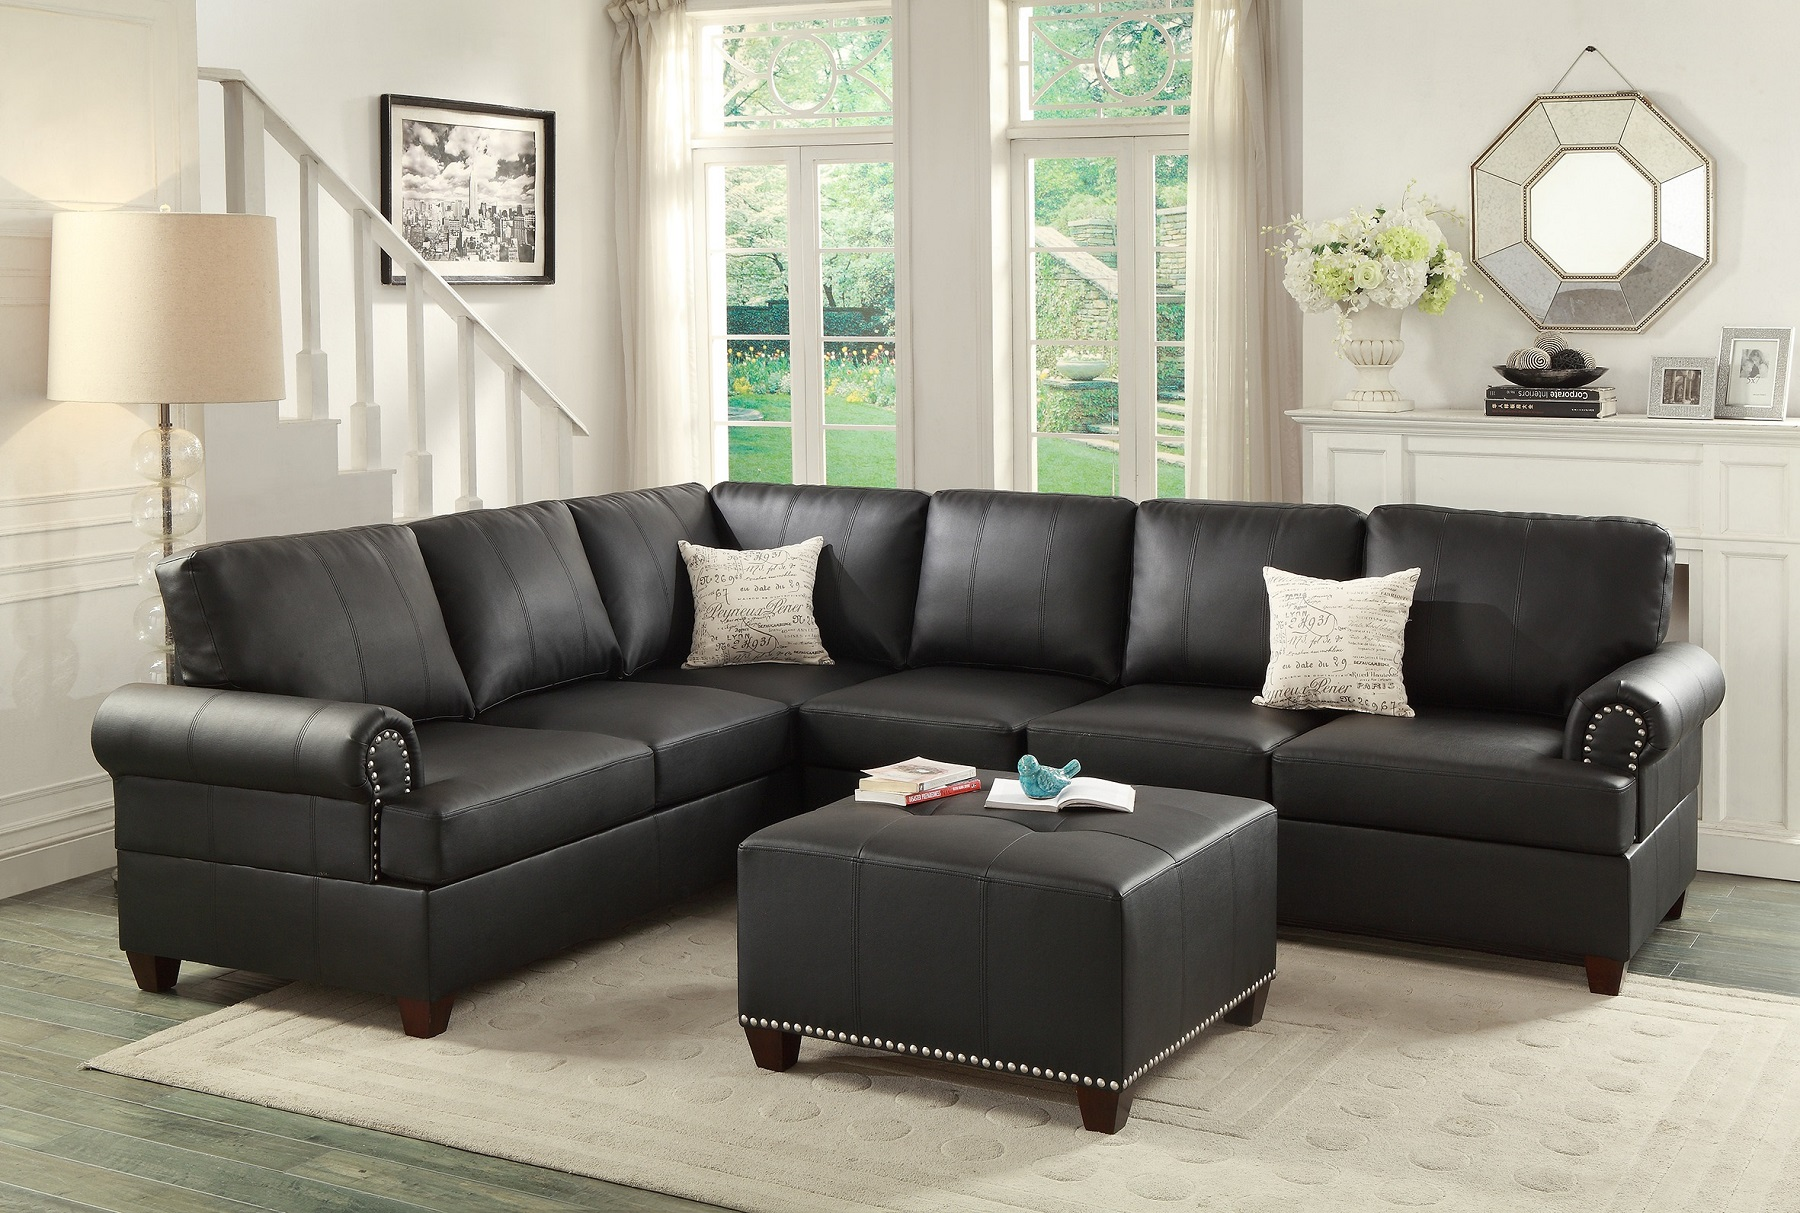 Black Leather Sectional Sofa Loveseat Wedge Hot Sectionals